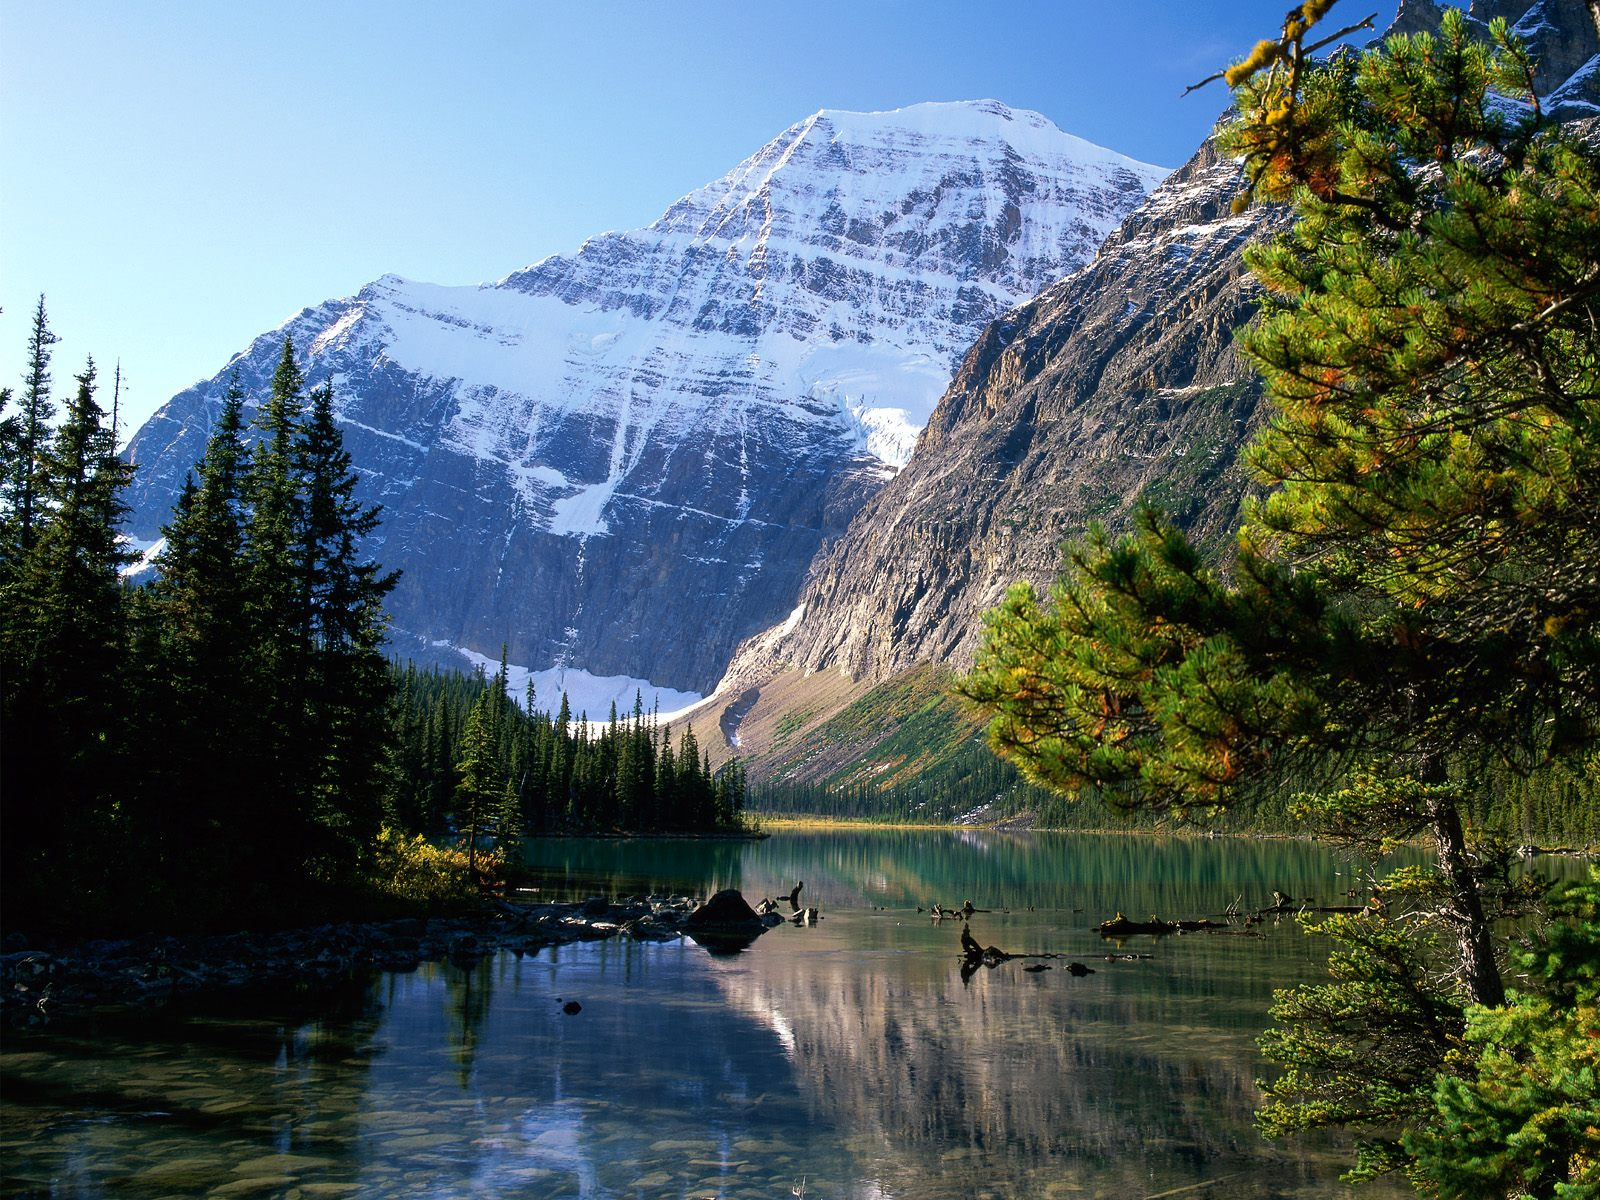 Jasper National Park Alberta Canada Photo 55821 Fanpop